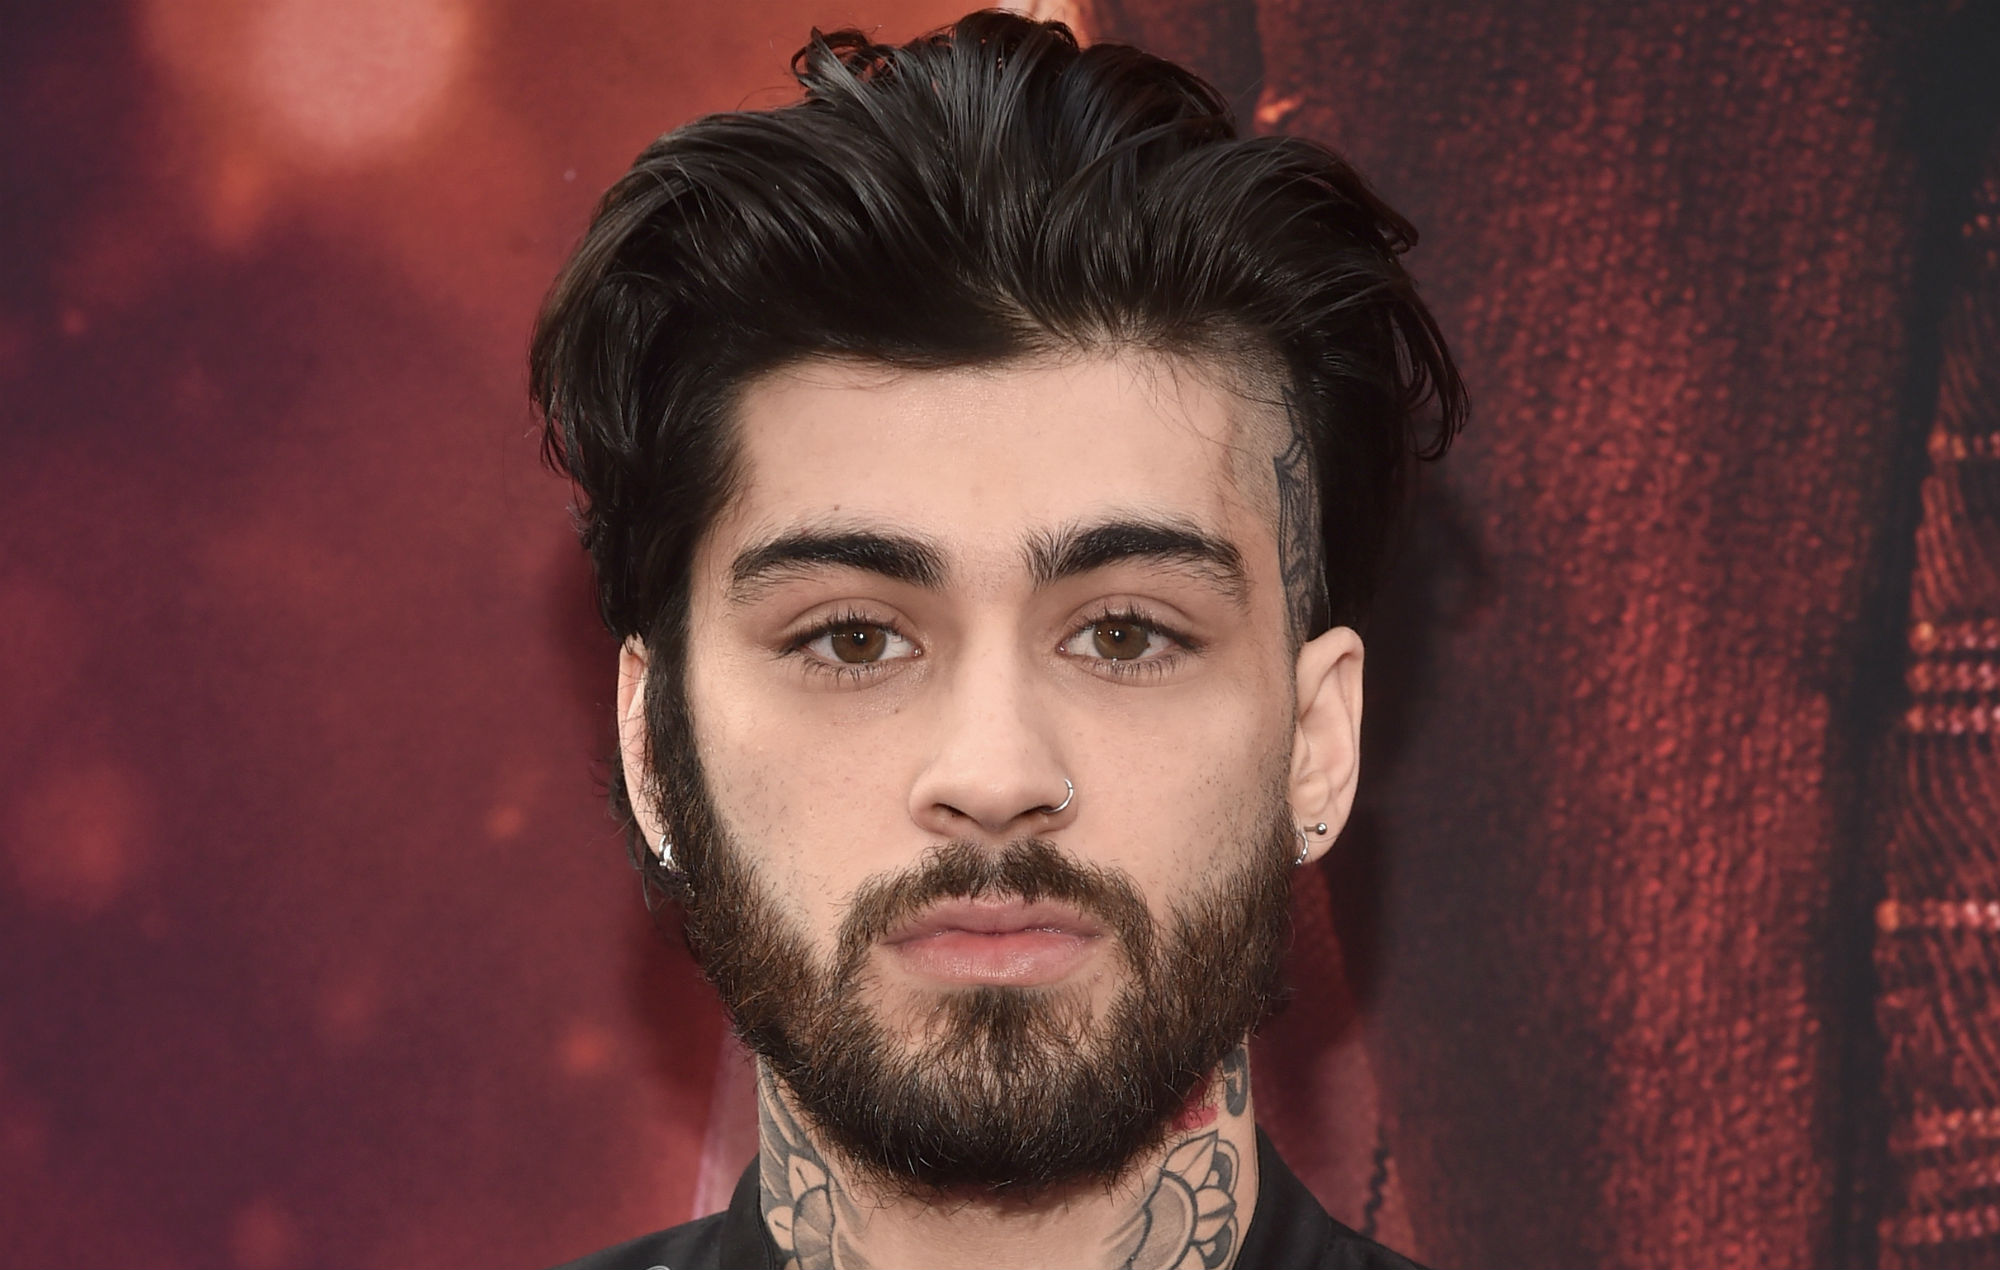 Zayn Malik S Fans Convince Spotify To Remove Islamaphobic Song Aimed At Singer